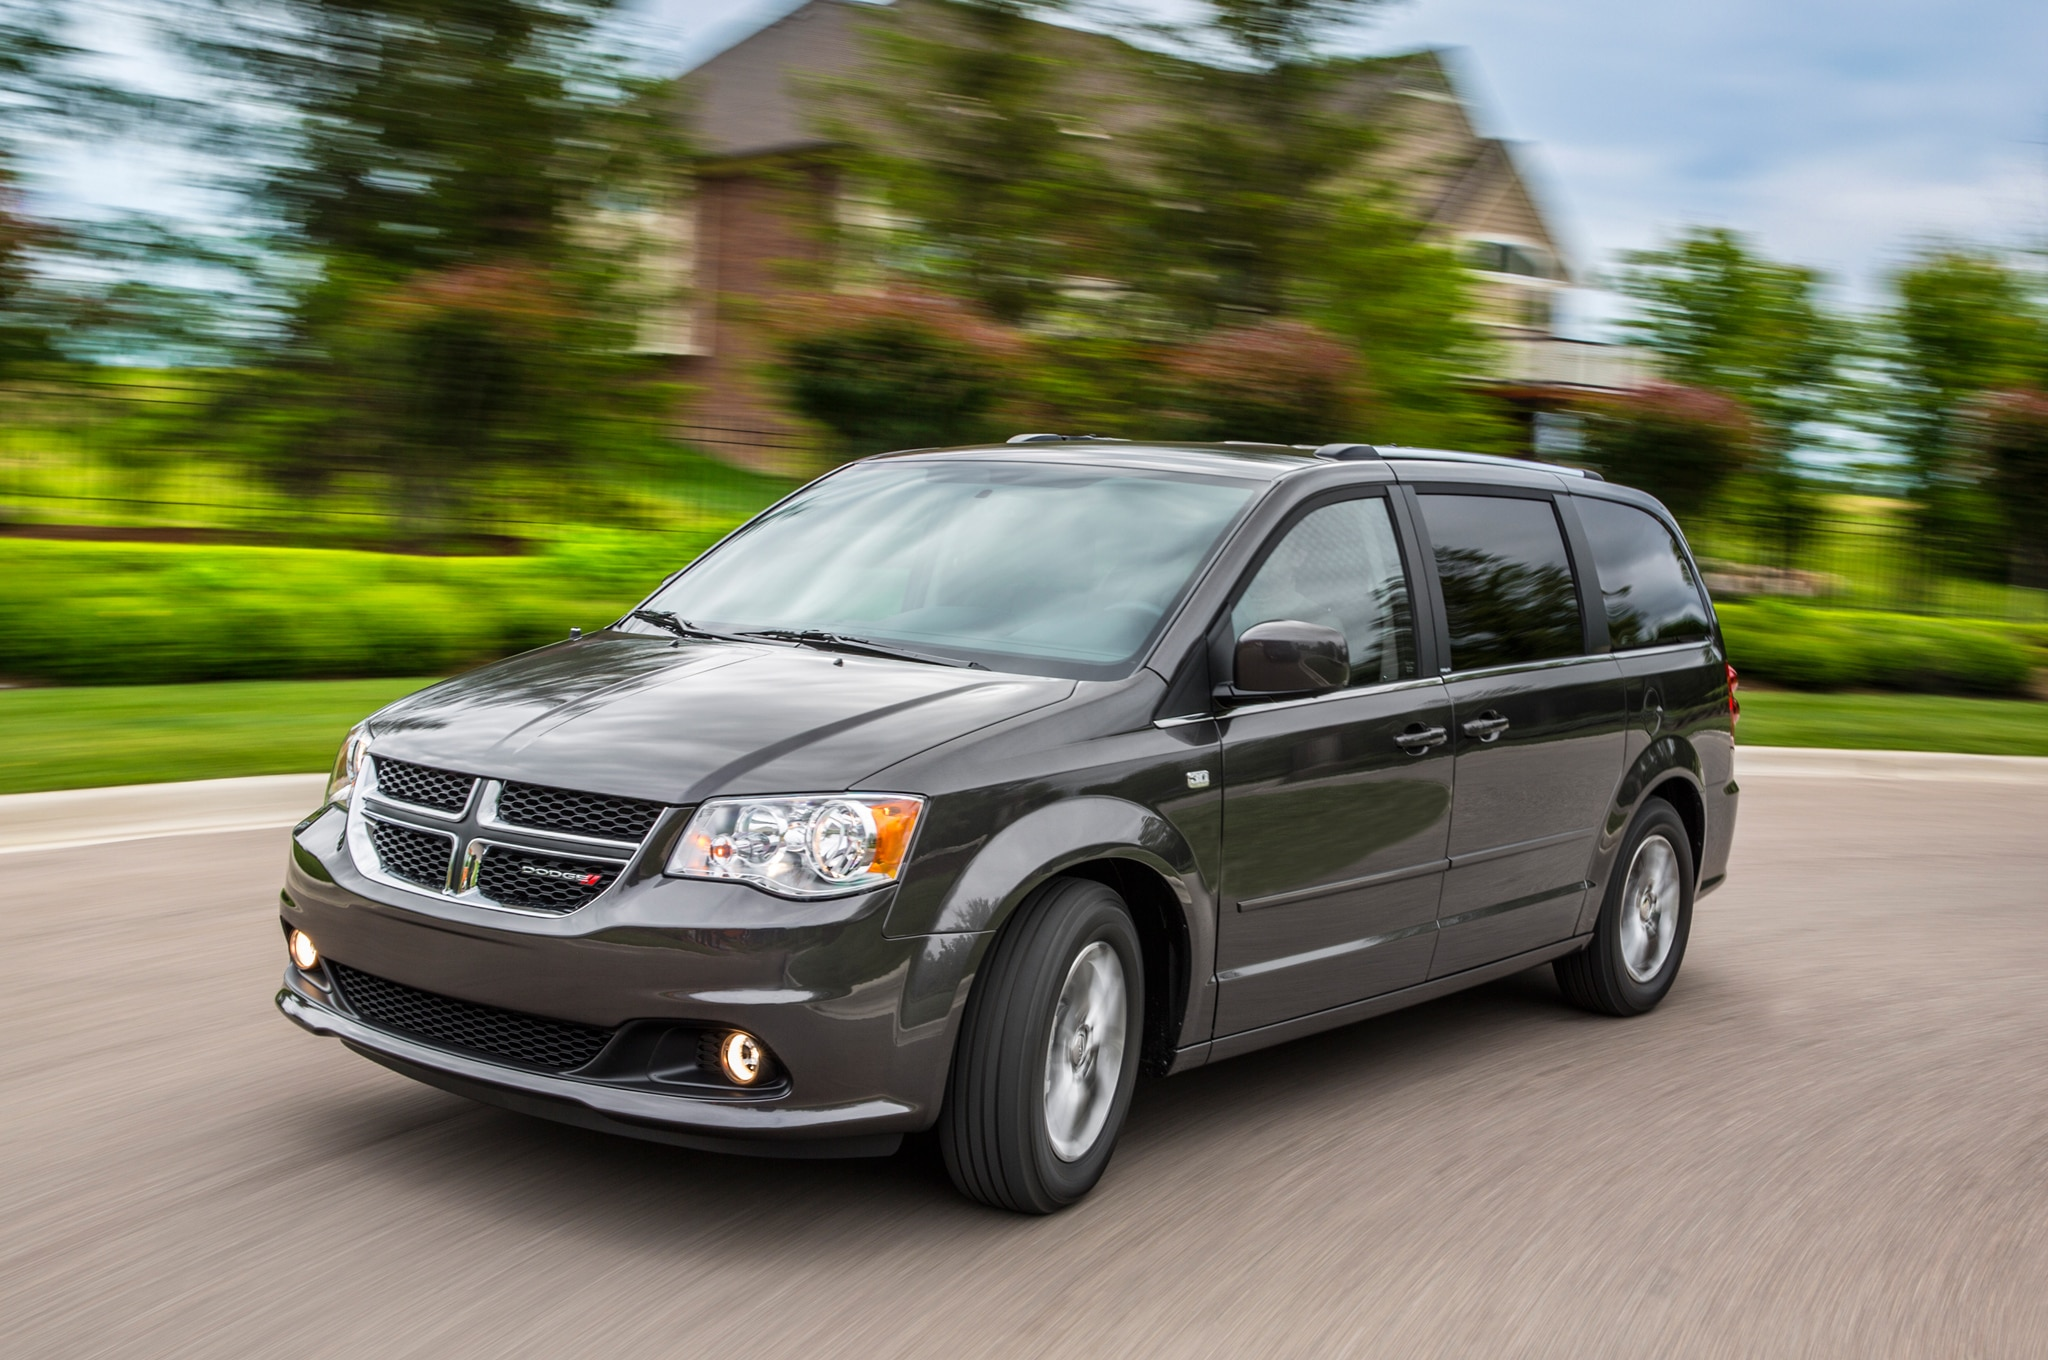 2014 Dodge Grand Caravan SXT 30th Anniversary Edition Front Three Quarter1